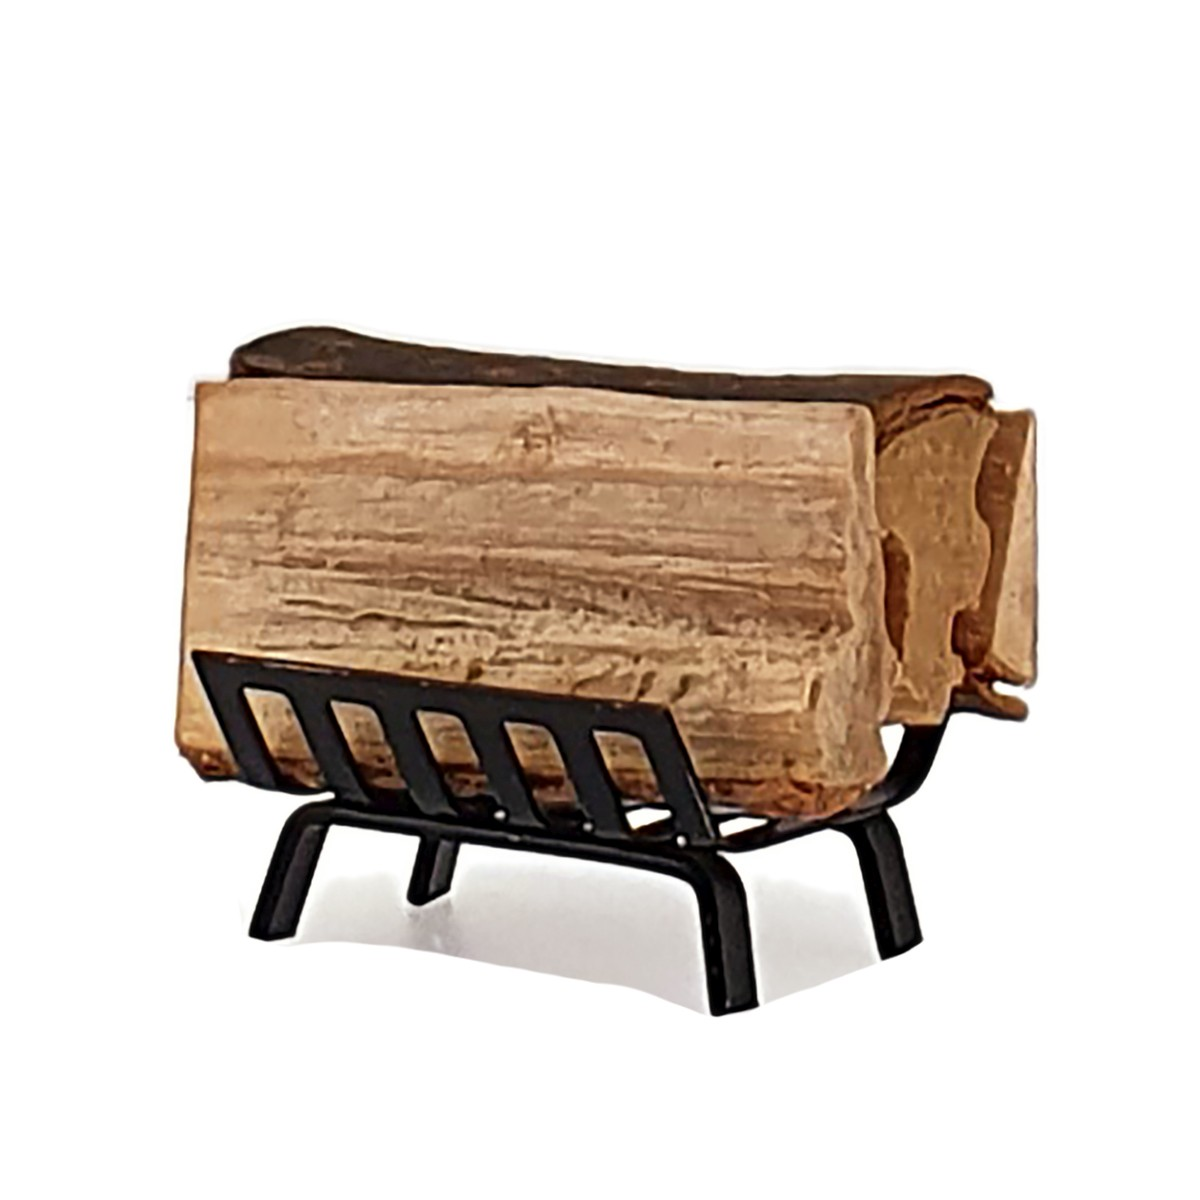 Fireplace wood basket with logs